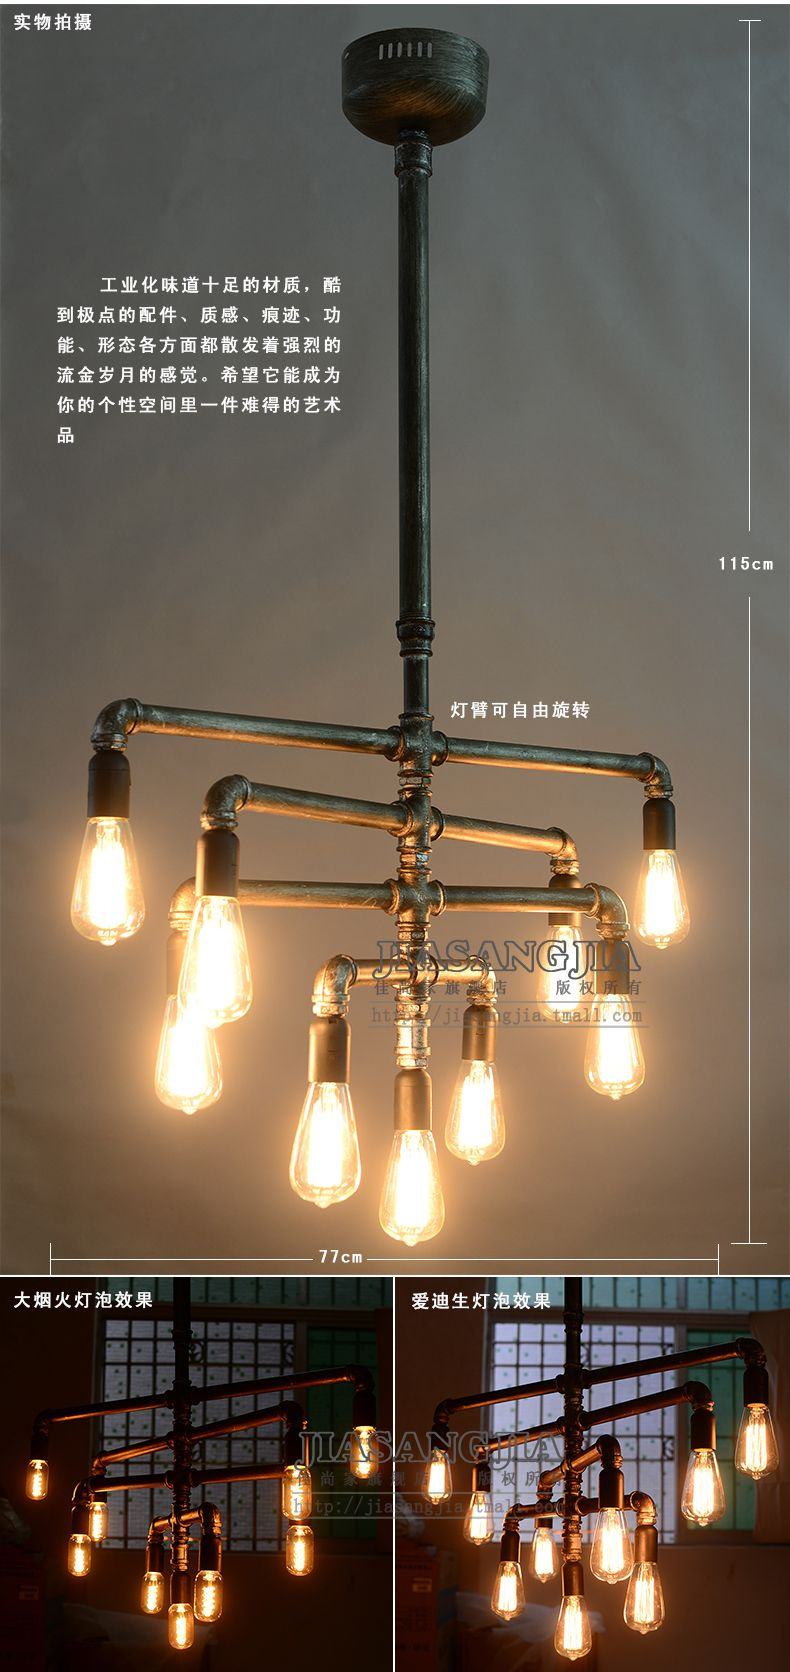 Aliexpress Com Buy Free Shipping Edison Vintage Chandelier Creative New Wire Diy Chandelier The Kit Braided Copper Wire And Ljuskrona Diy Rorlampa Armatur